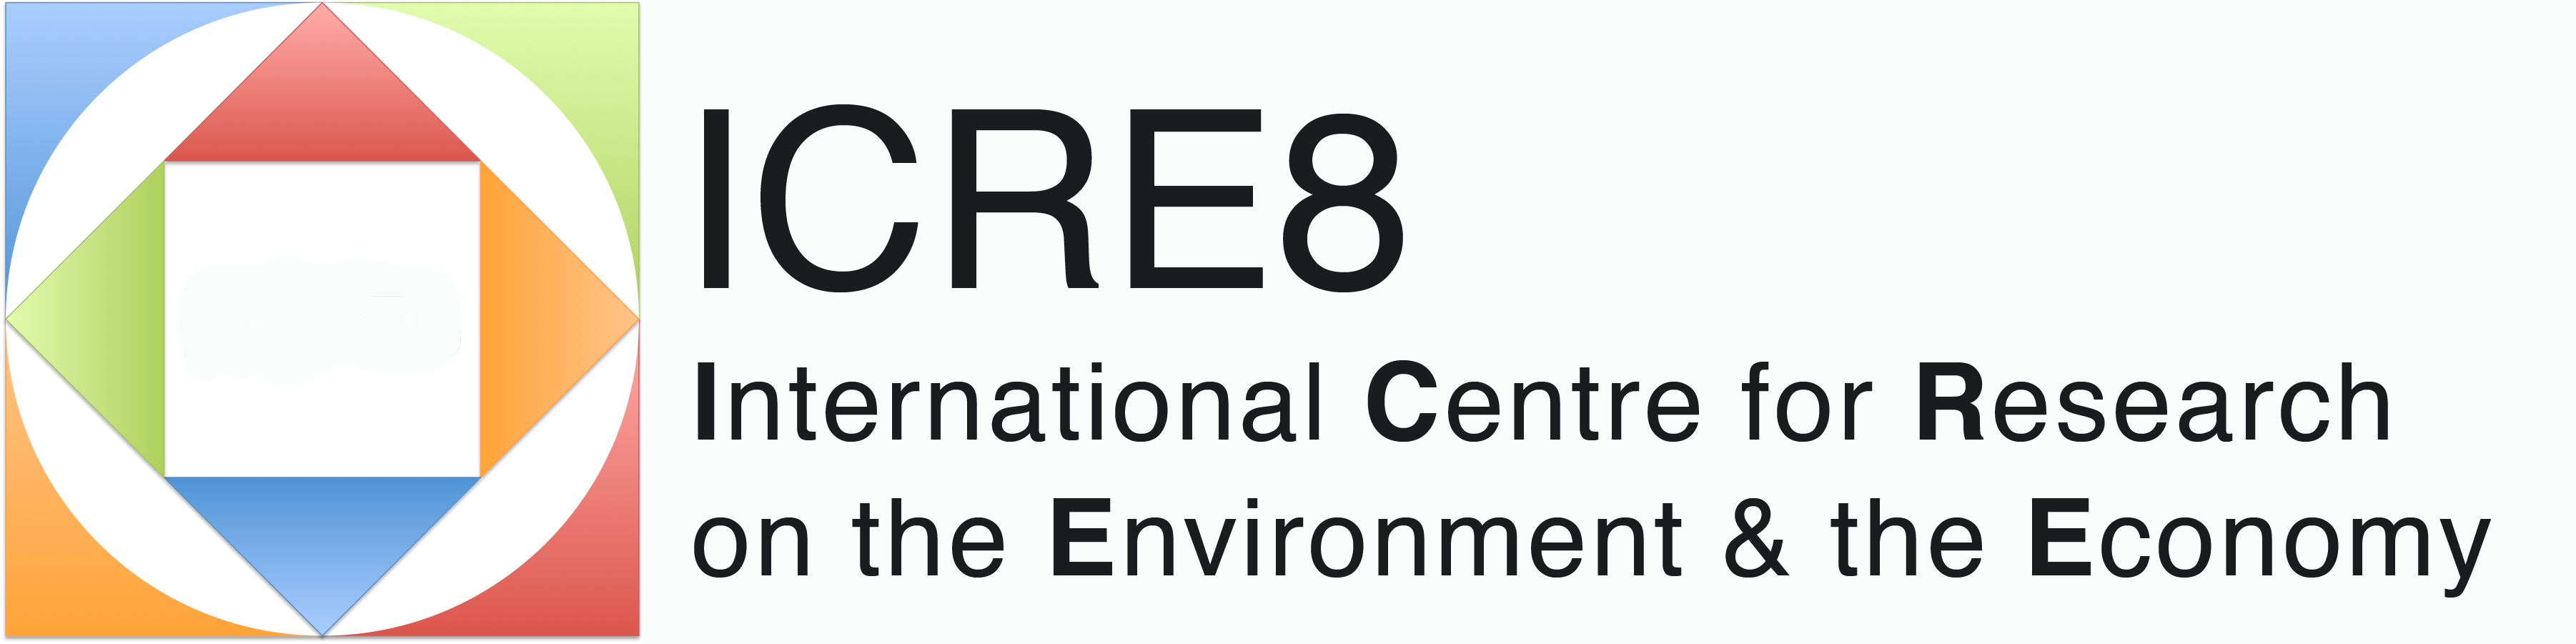 ICRE8